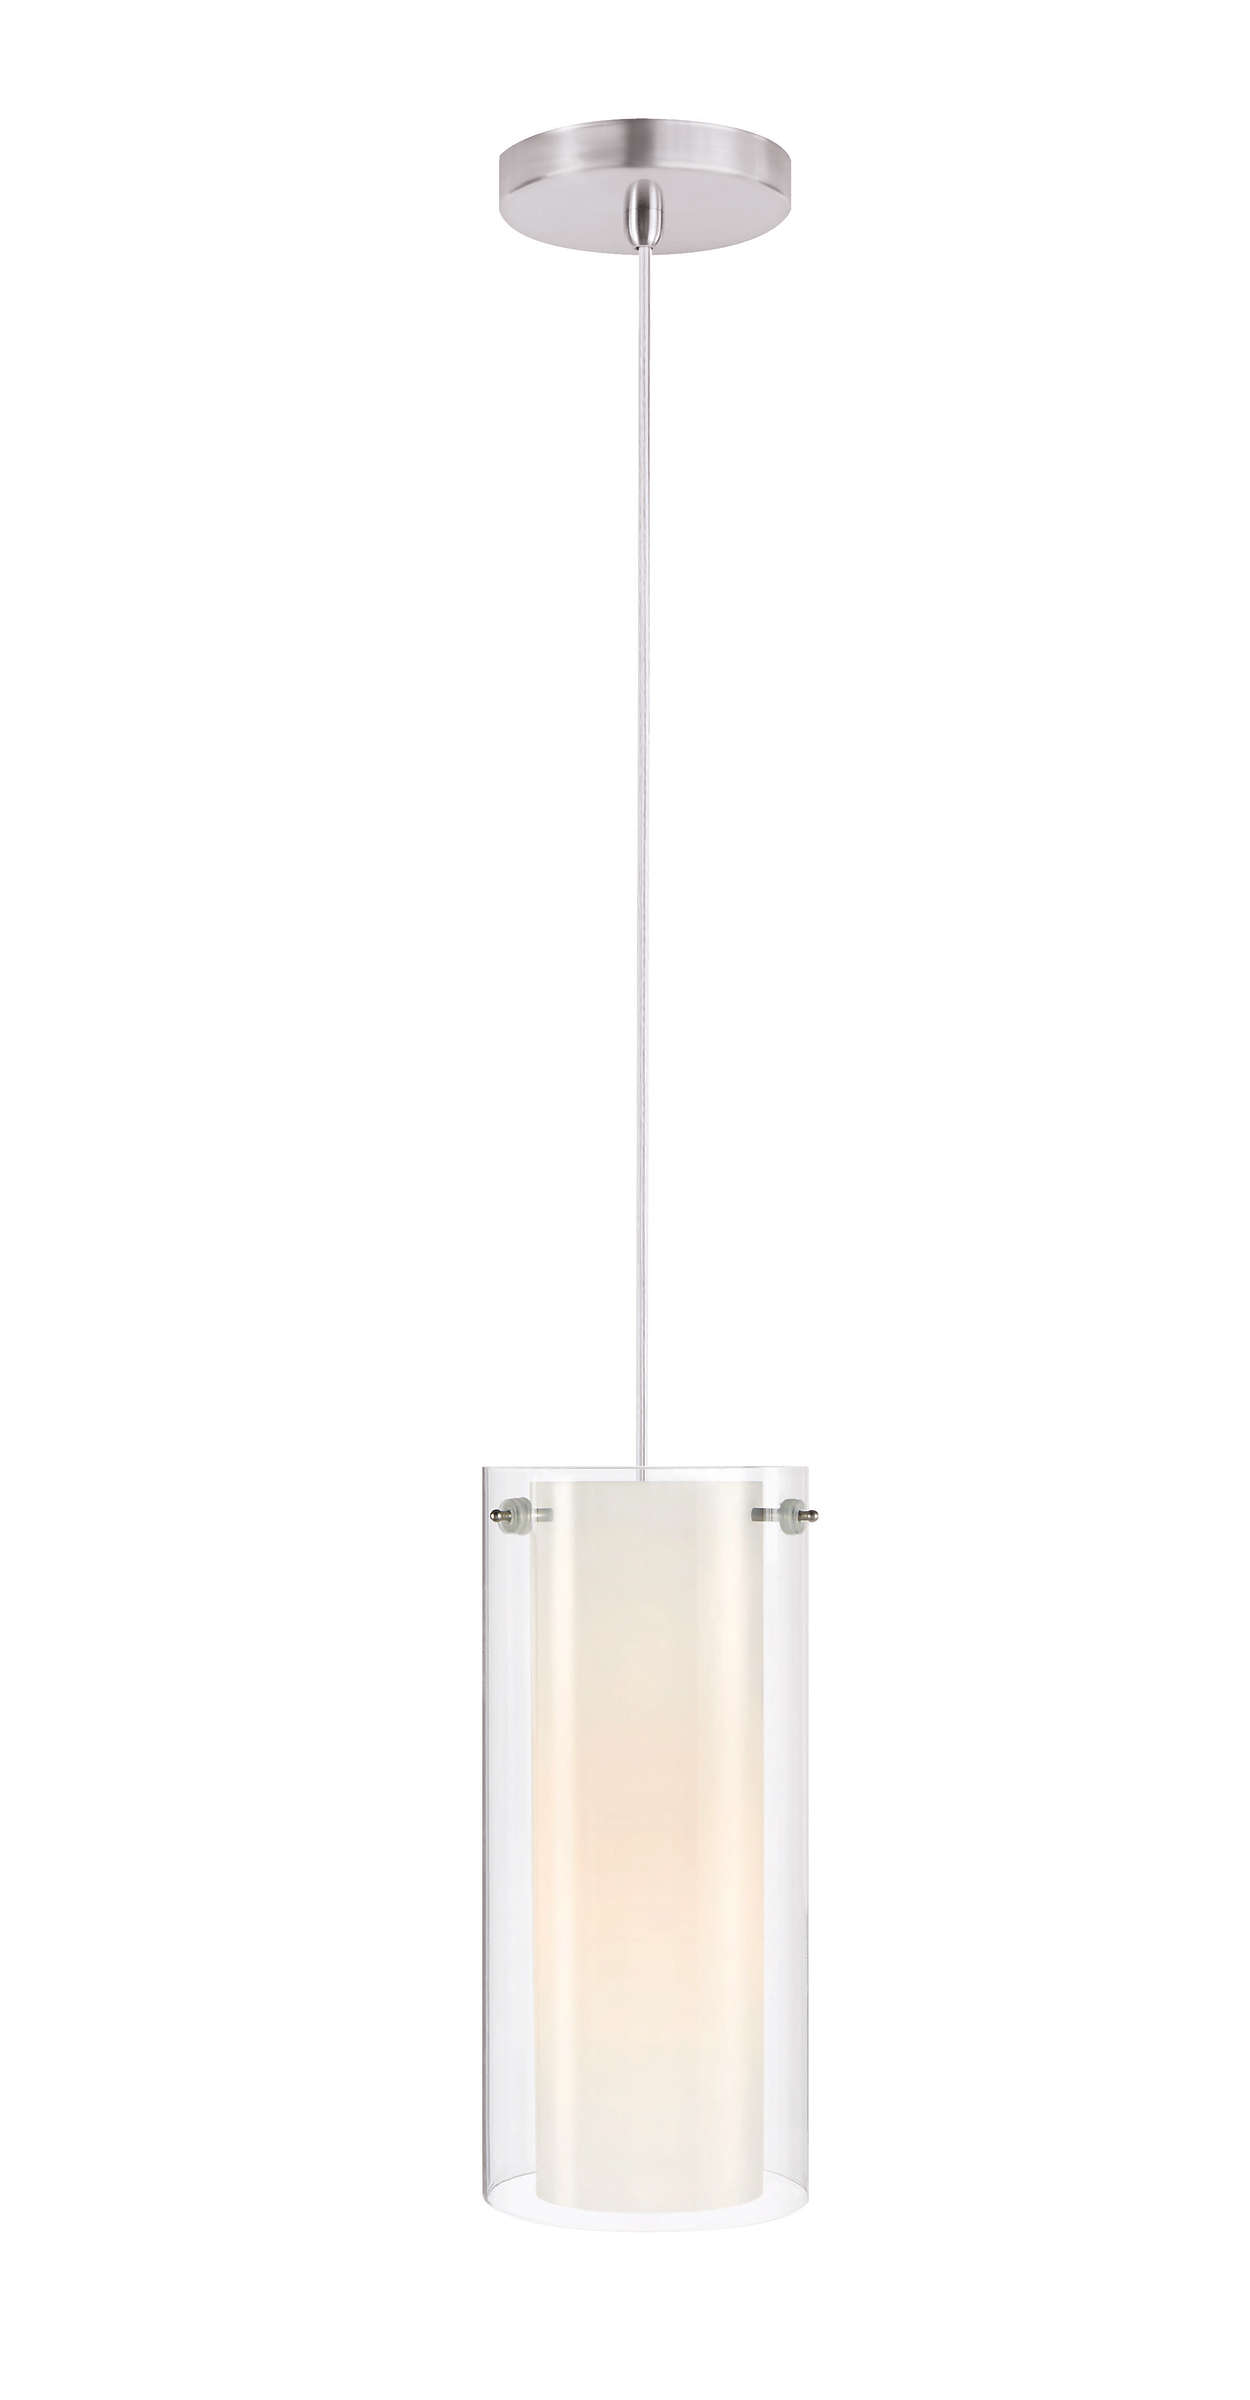 Hula 1-light pendant in Satin Nickel finish